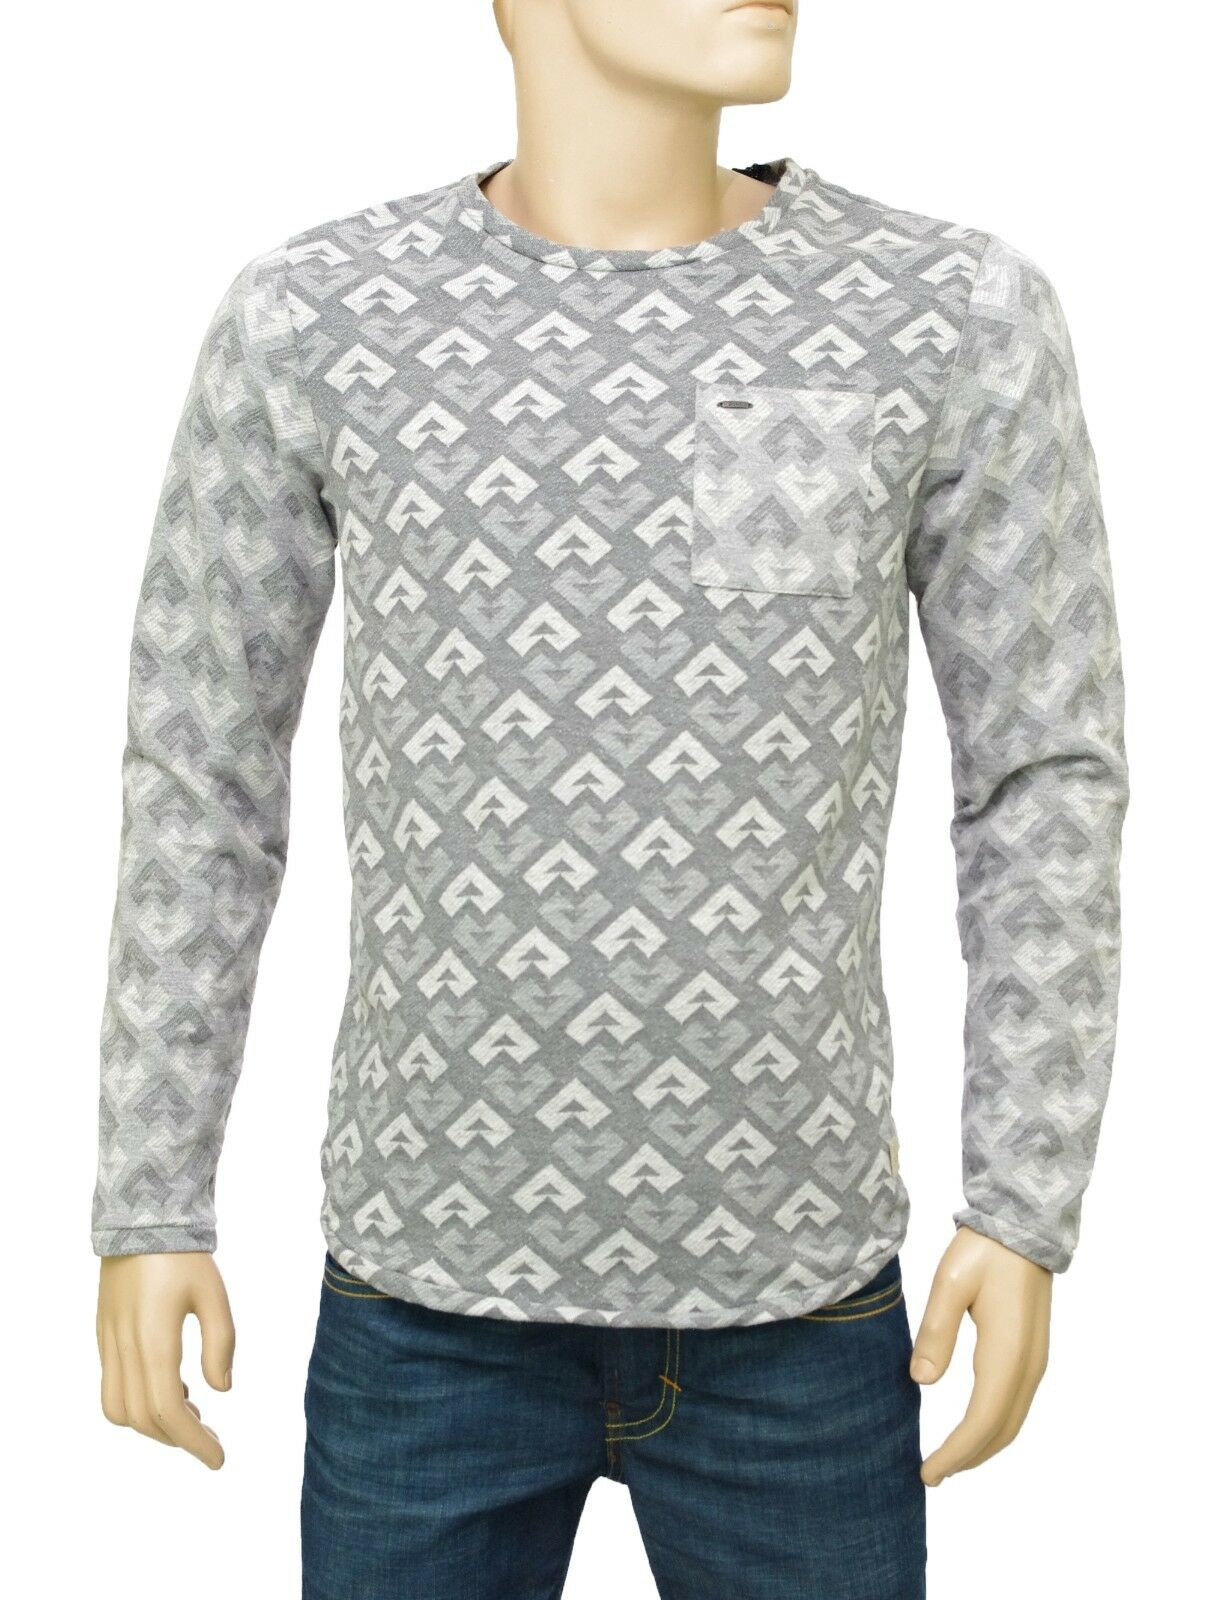 SCOTCH and SODA Sweat Shirt léger homme grigio LONGSLEEVE JACQUARD knit grigio